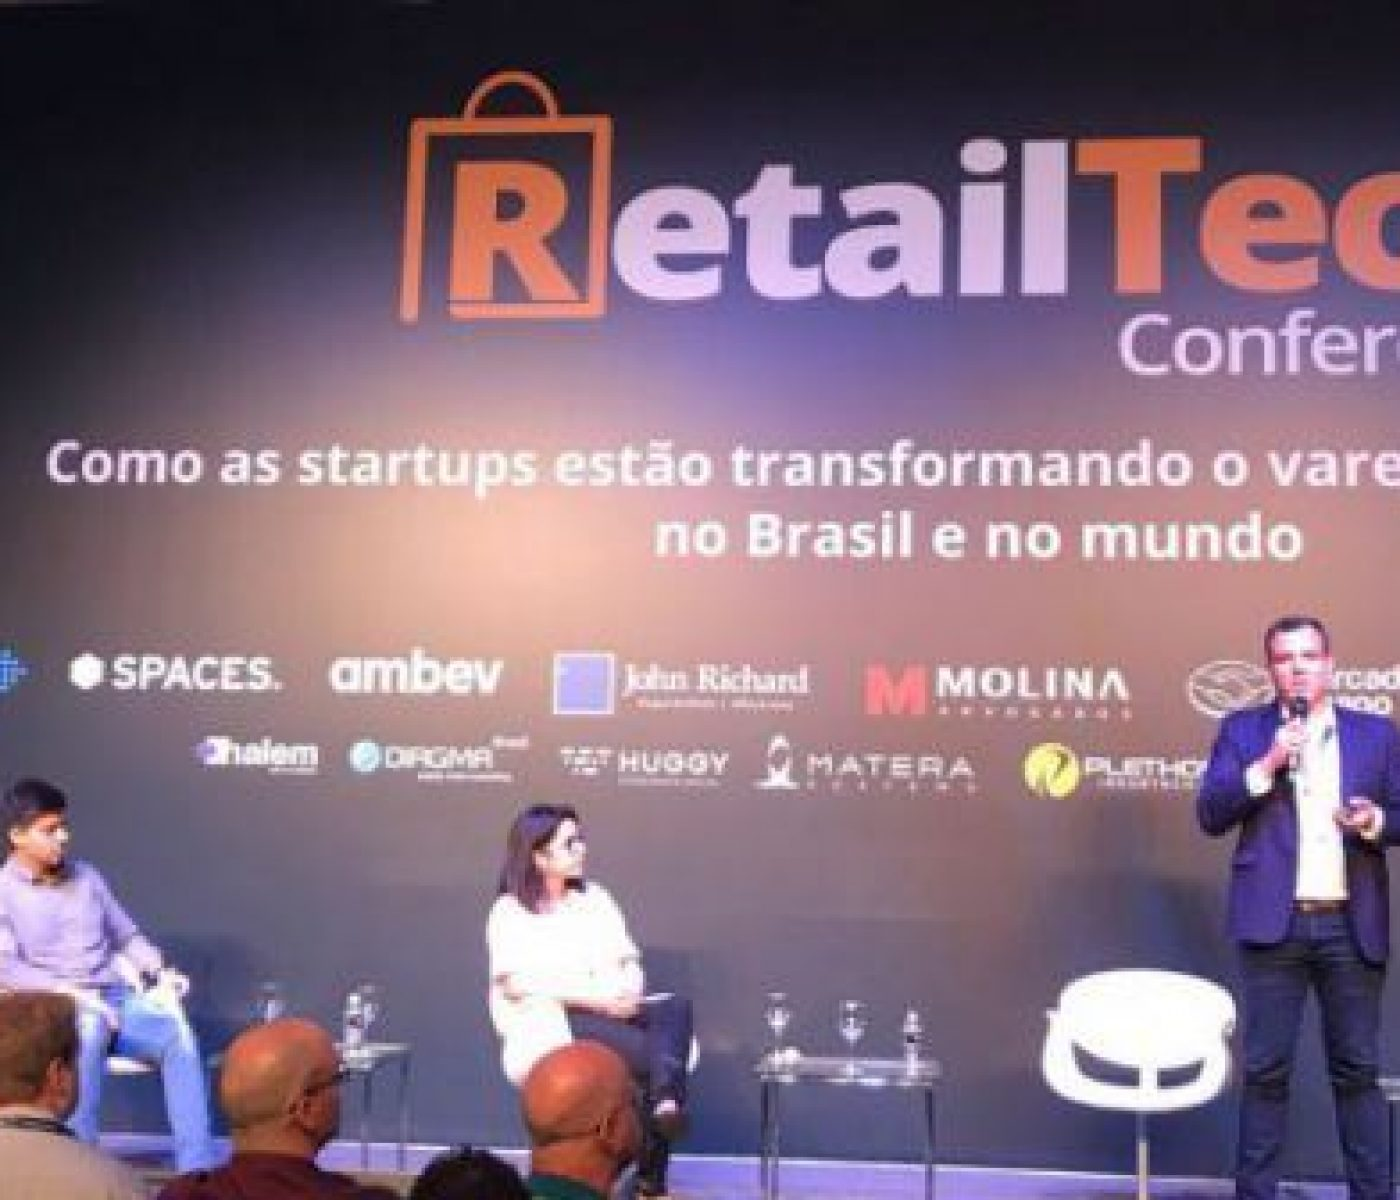 RETAIL TECH CONFERENCE 2017